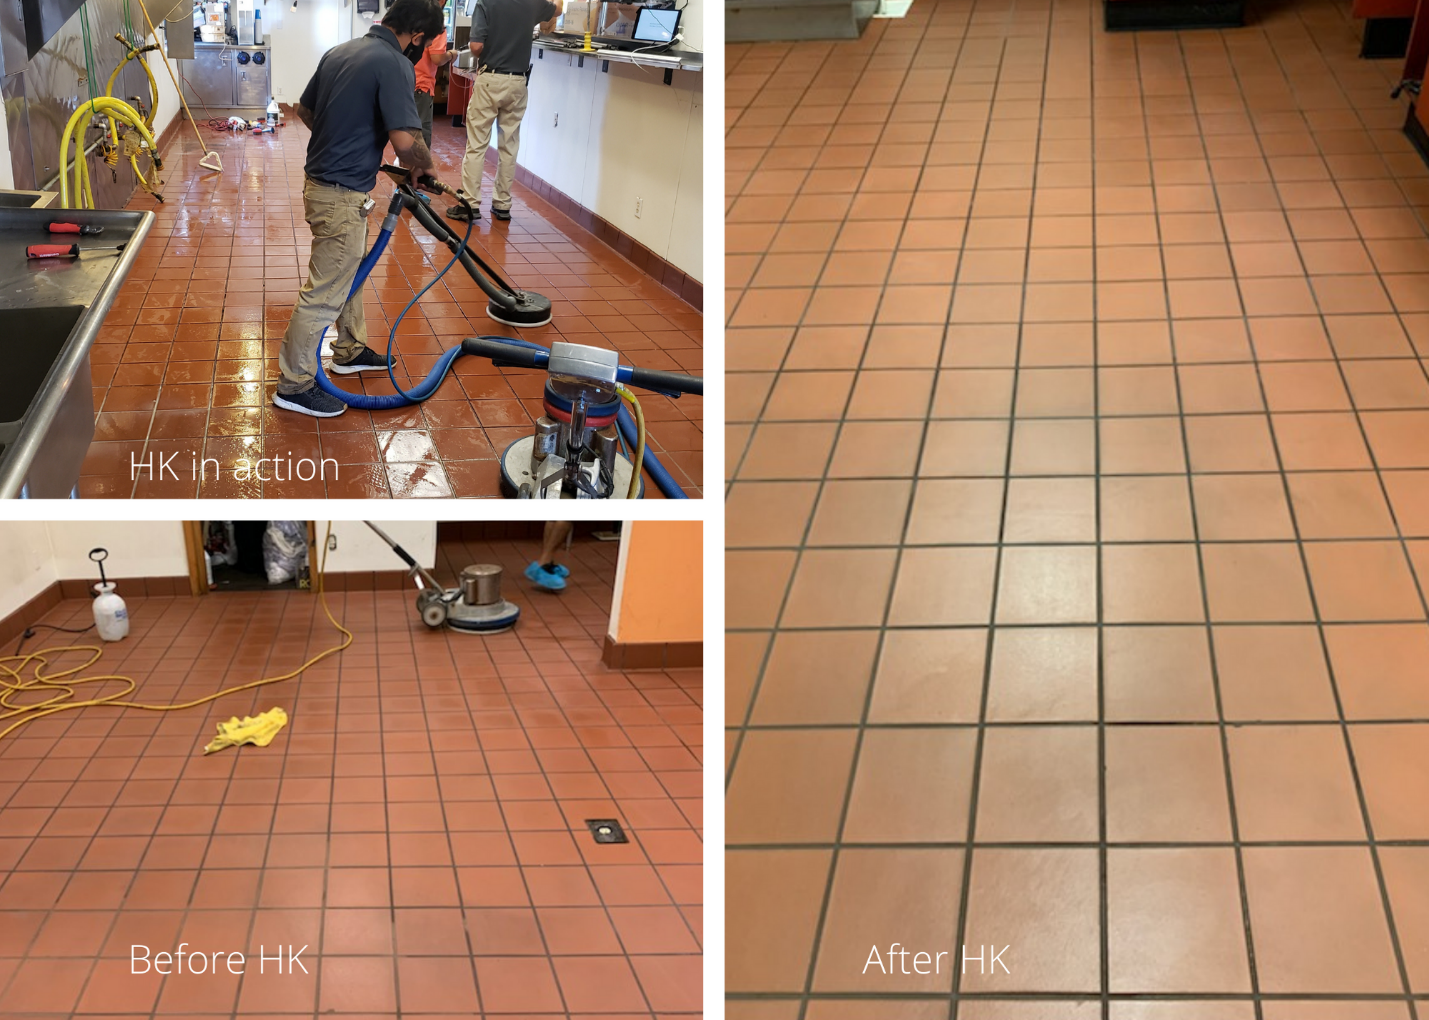 before and after Hammond Knoll cleaned a burger restaurant's floors